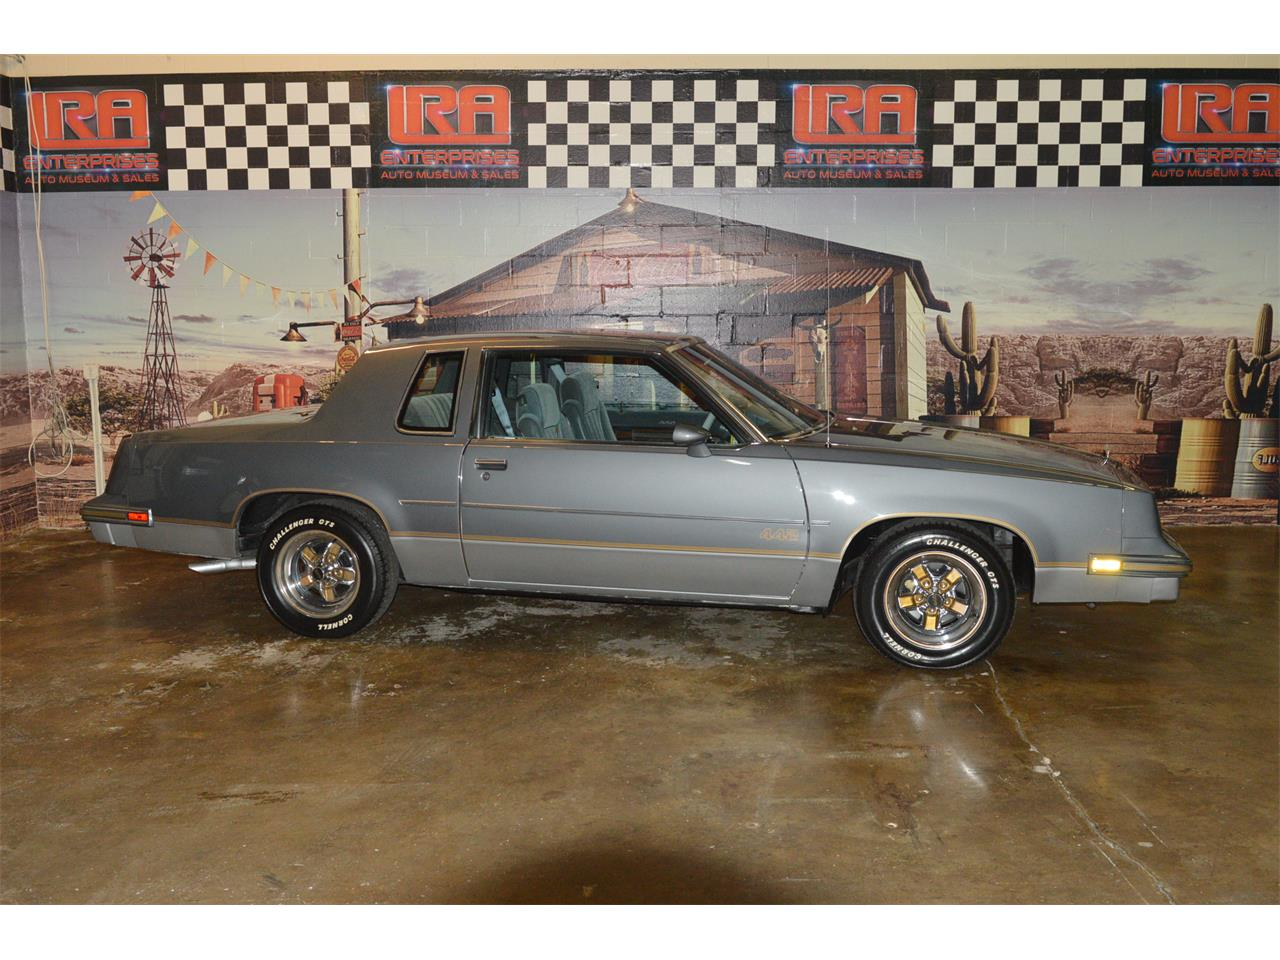 Large Picture of '85 Oldsmobile Cutlass - $13,900.00 Offered by L.R.A. Enterprises Auto Museum & Sales - PQP1